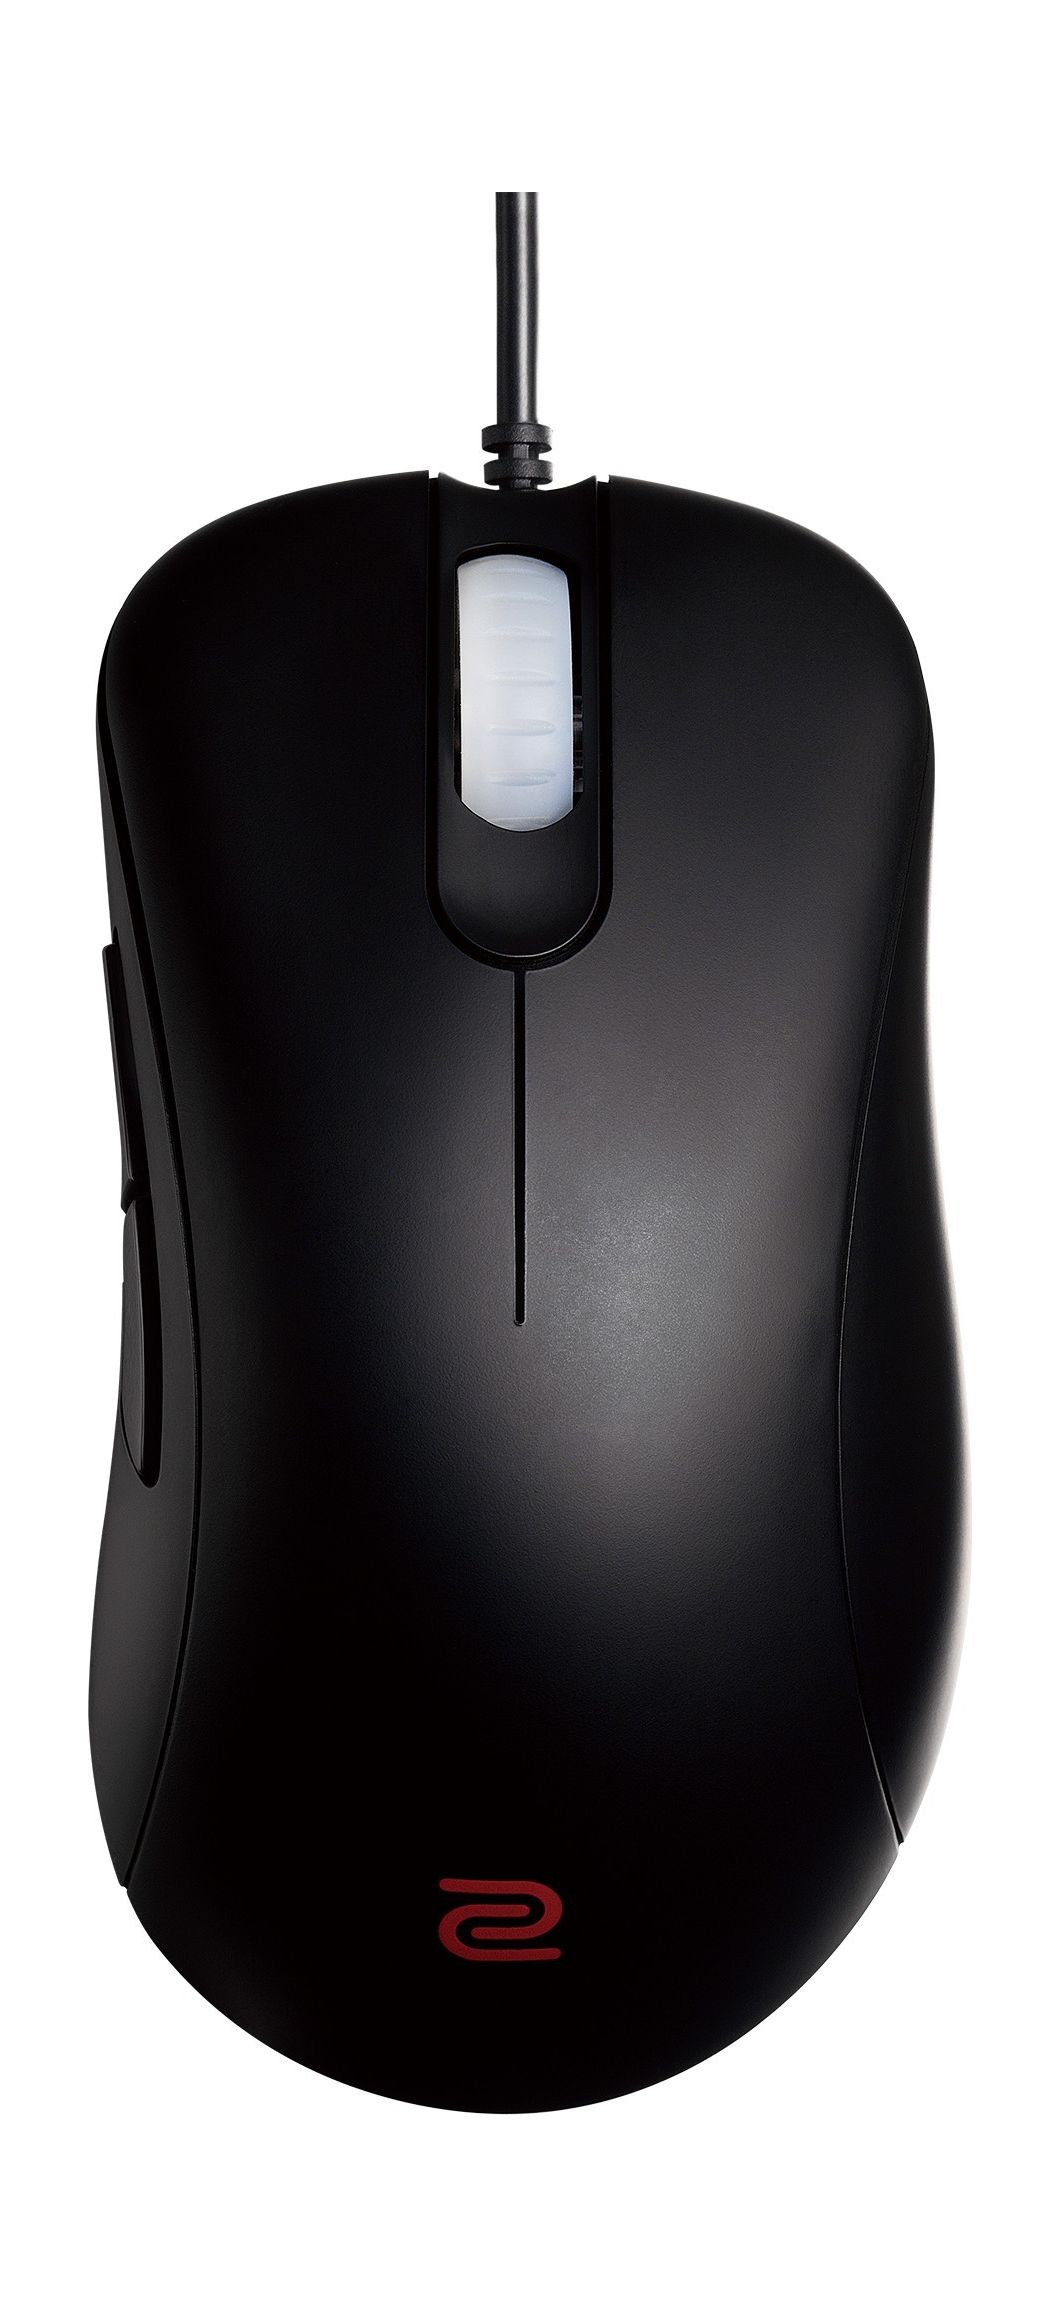 BenQ MOUSE EC1-A   Gaming Mouse   Mouse   Gaming Gears   Xcite Kuwait